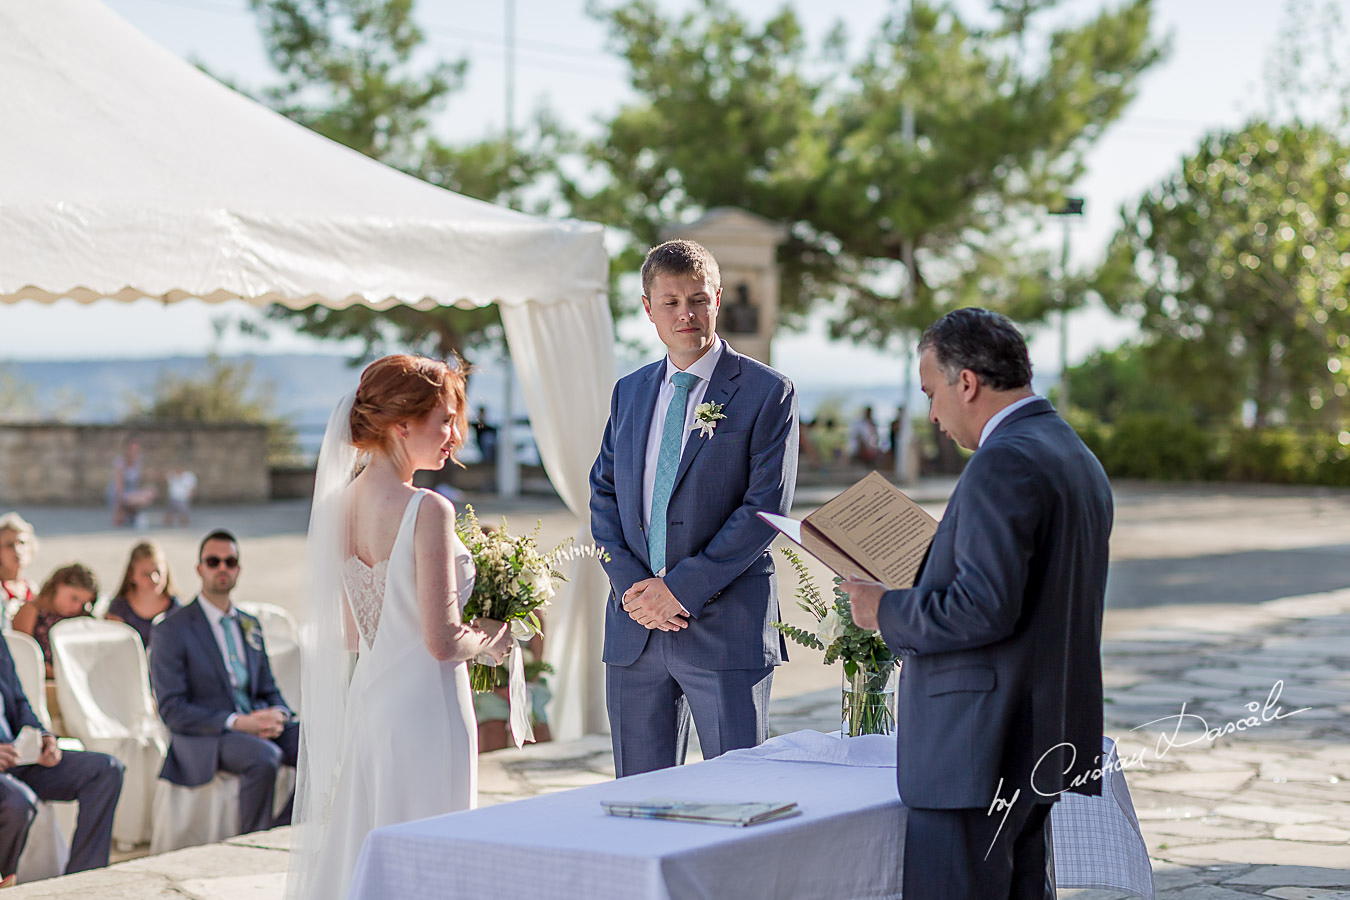 Wedding Celebration at Apokryfo - 48